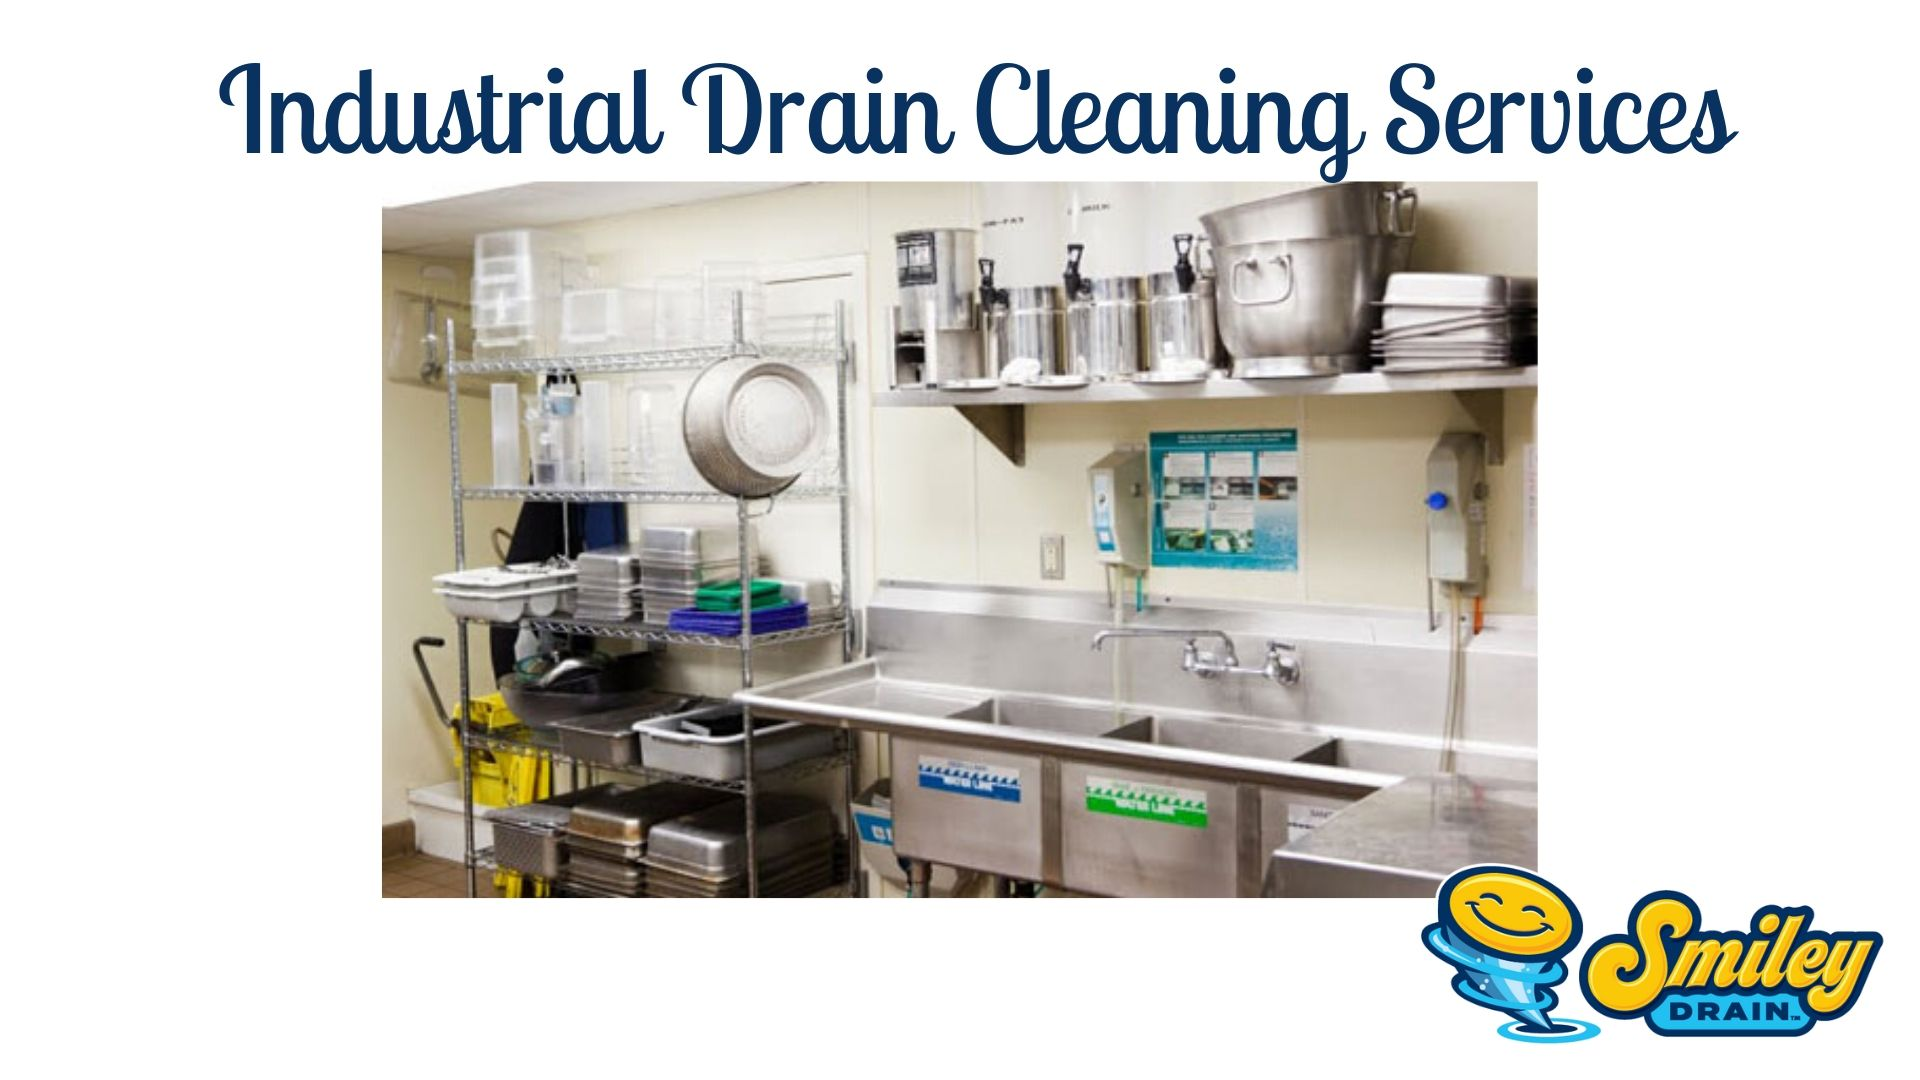 Commercial Drain Cleaning in Essex County New Jersey